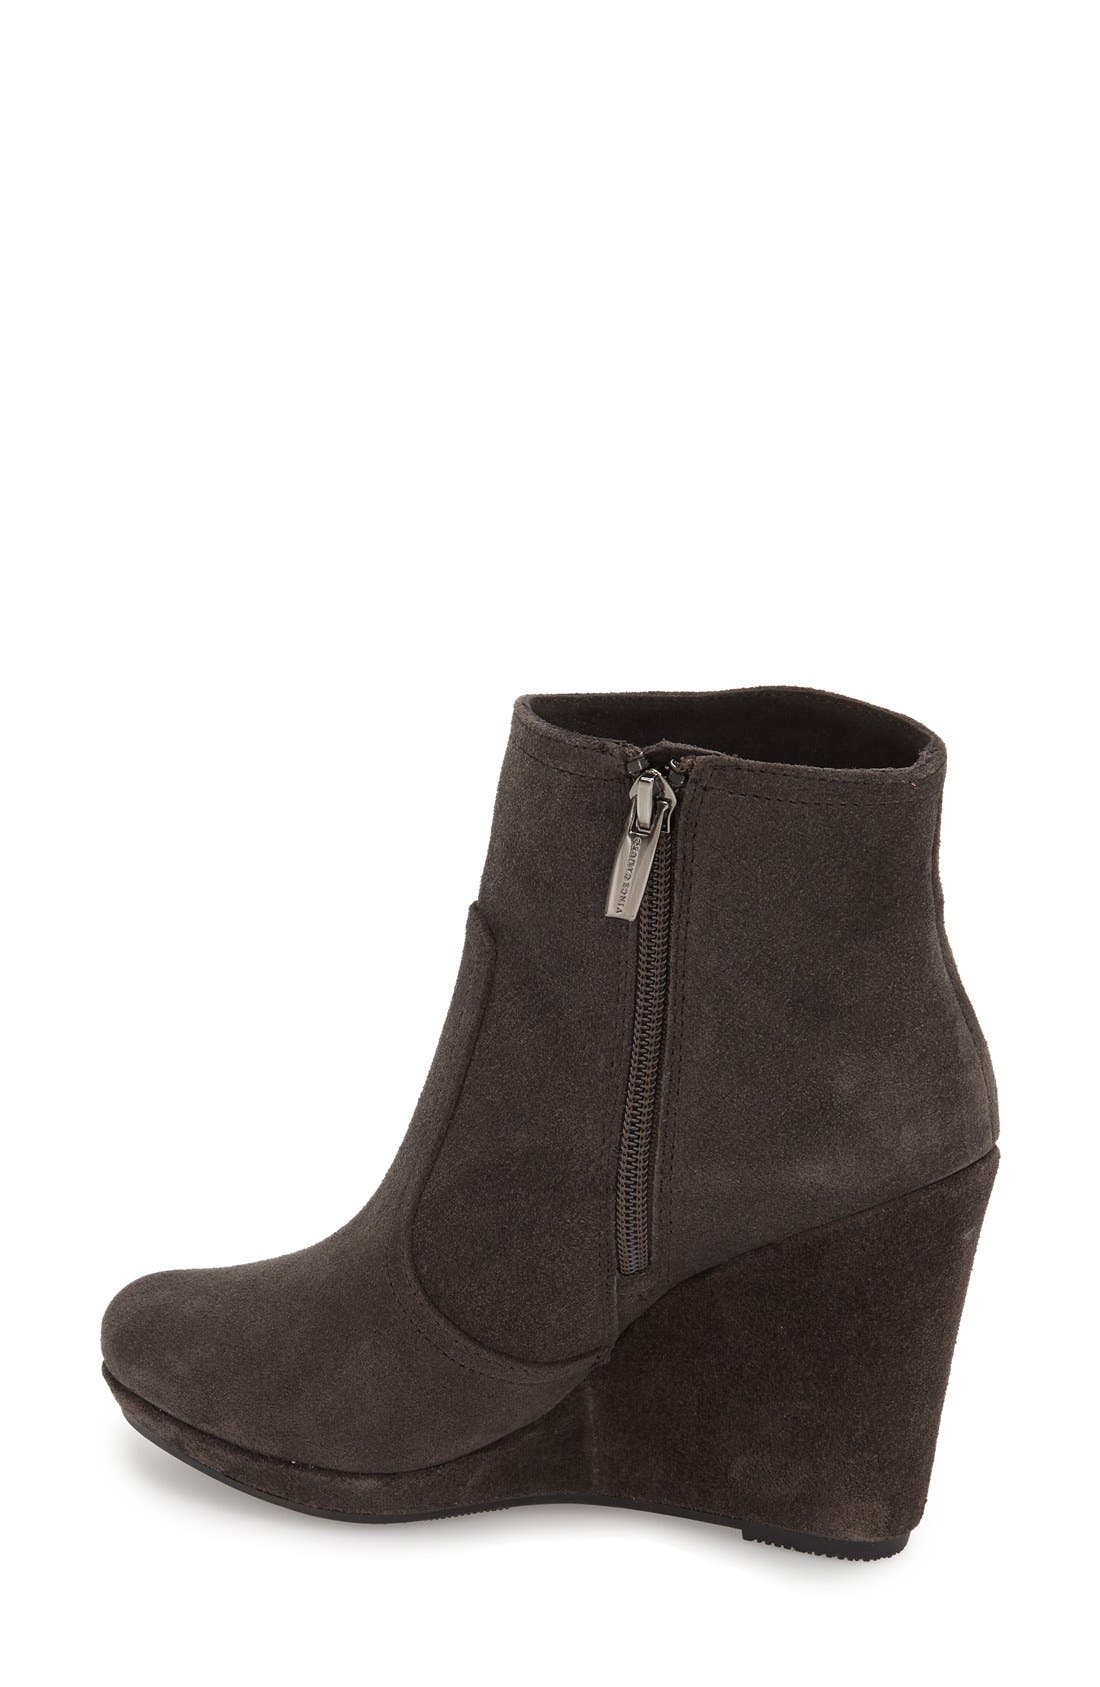 Alternate Image 2  - Vince Camuto 'Abrum' Wedge Bootie (Women)